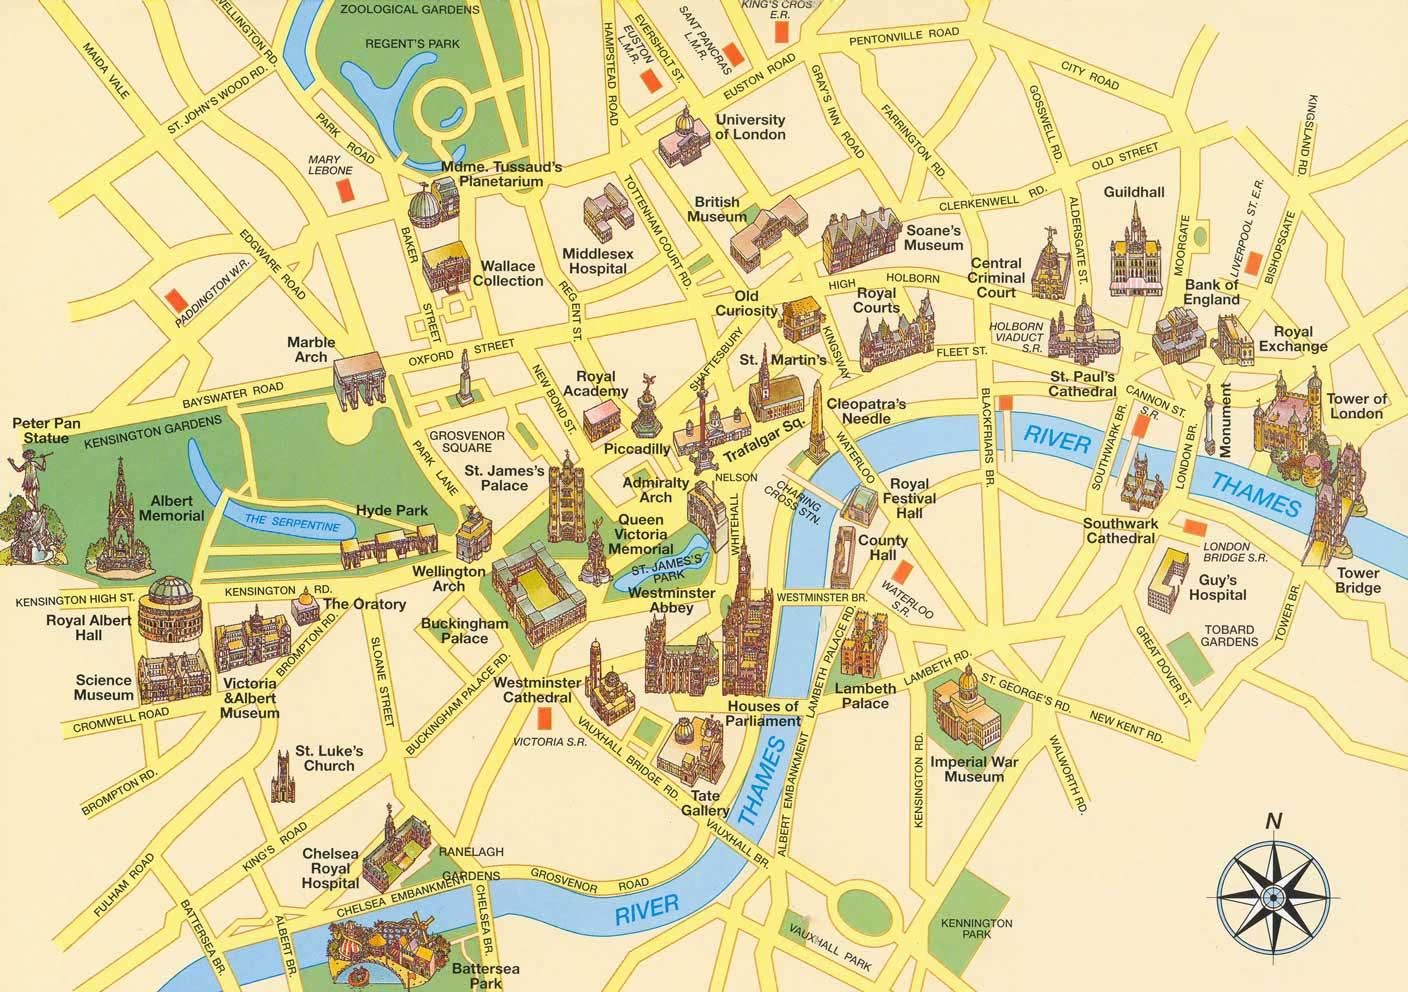 Detailed Map Of London.Large Detailed Tourist Map Of London City Center London City Center